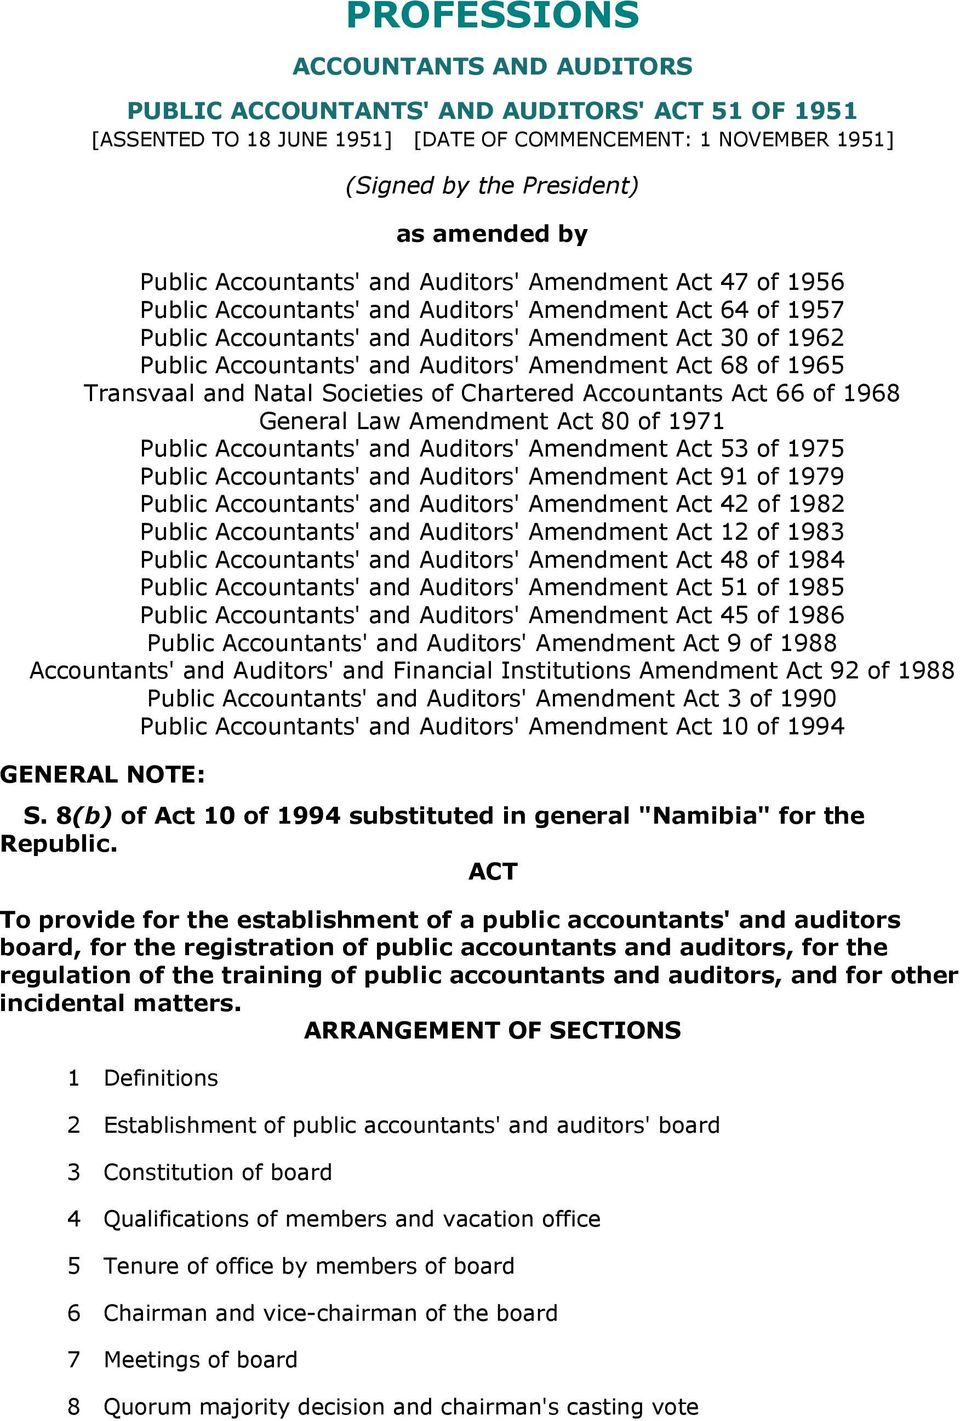 Auditors' Amendment Act 68 of 1965 Transvaal and Natal Societies of Chartered Accountants Act 66 of 1968 General Law Amendment Act 80 of 1971 Public Accountants' and Auditors' Amendment Act 53 of